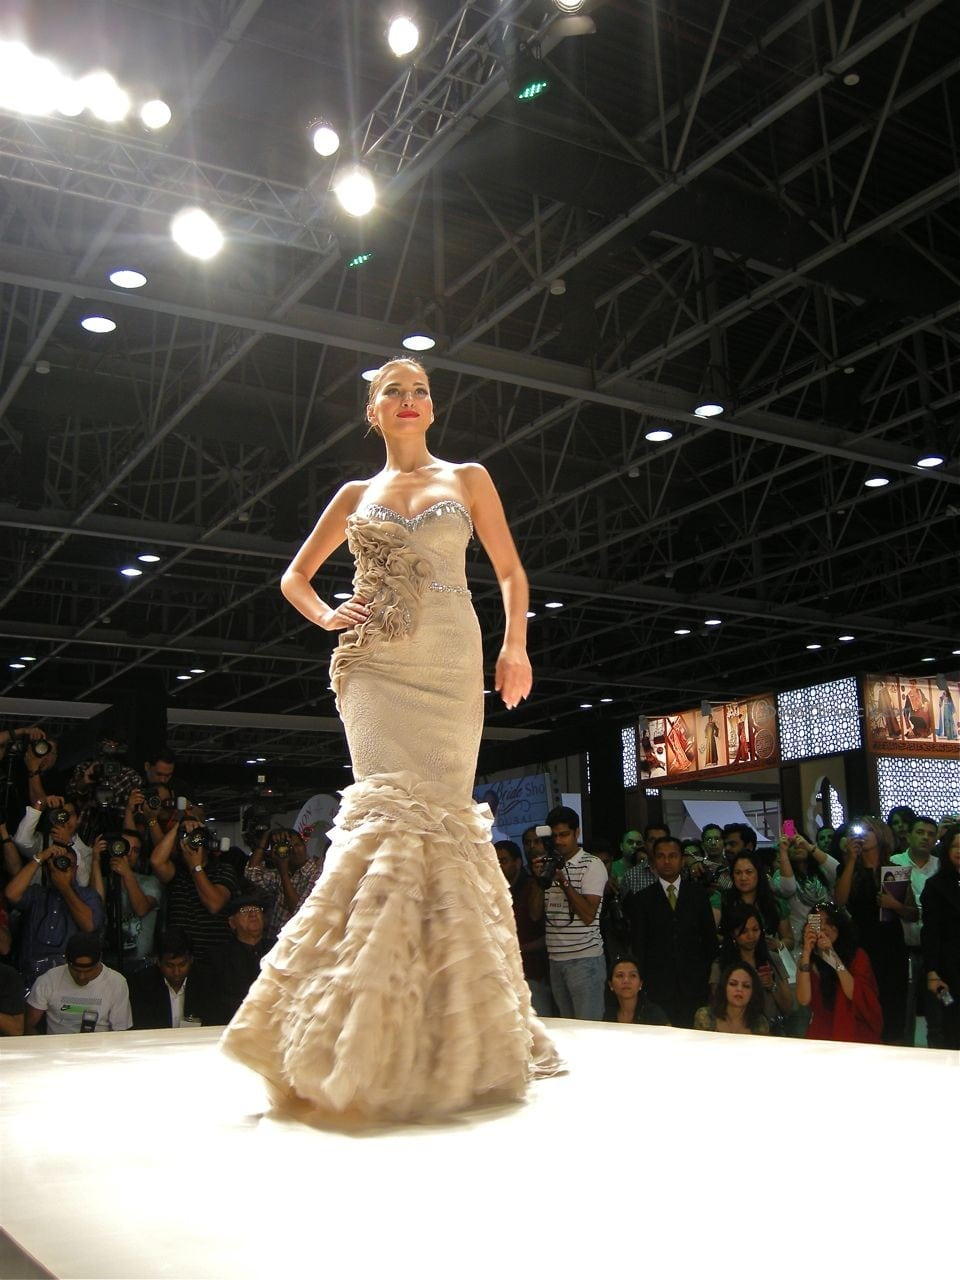 Dubai-grown Haute Couture - Bride Show Dubai 3